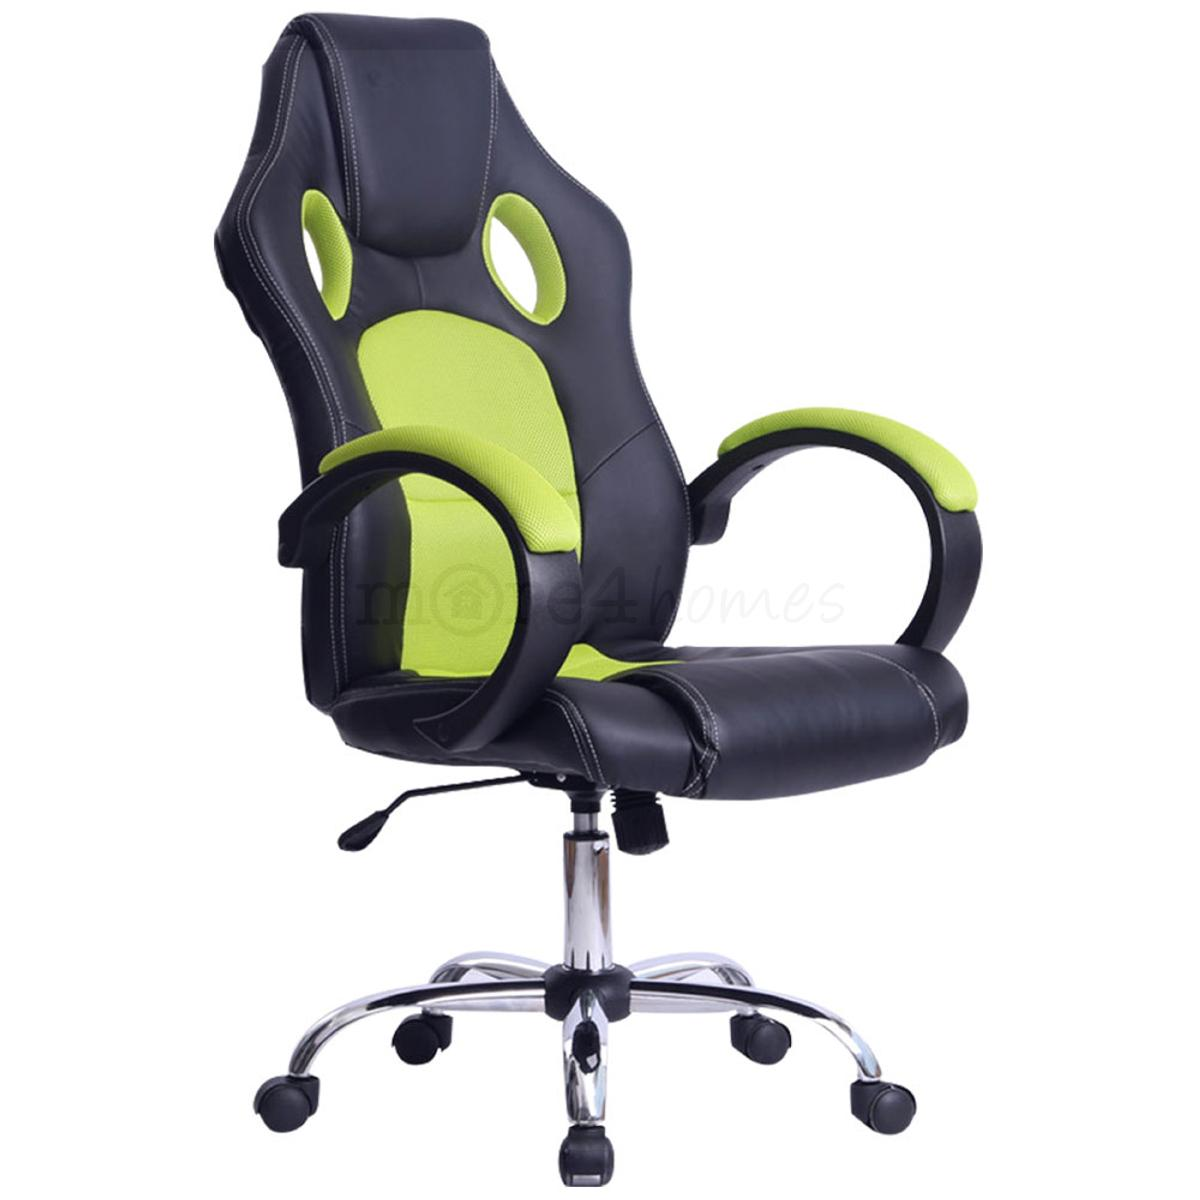 race car office chair prix green pic